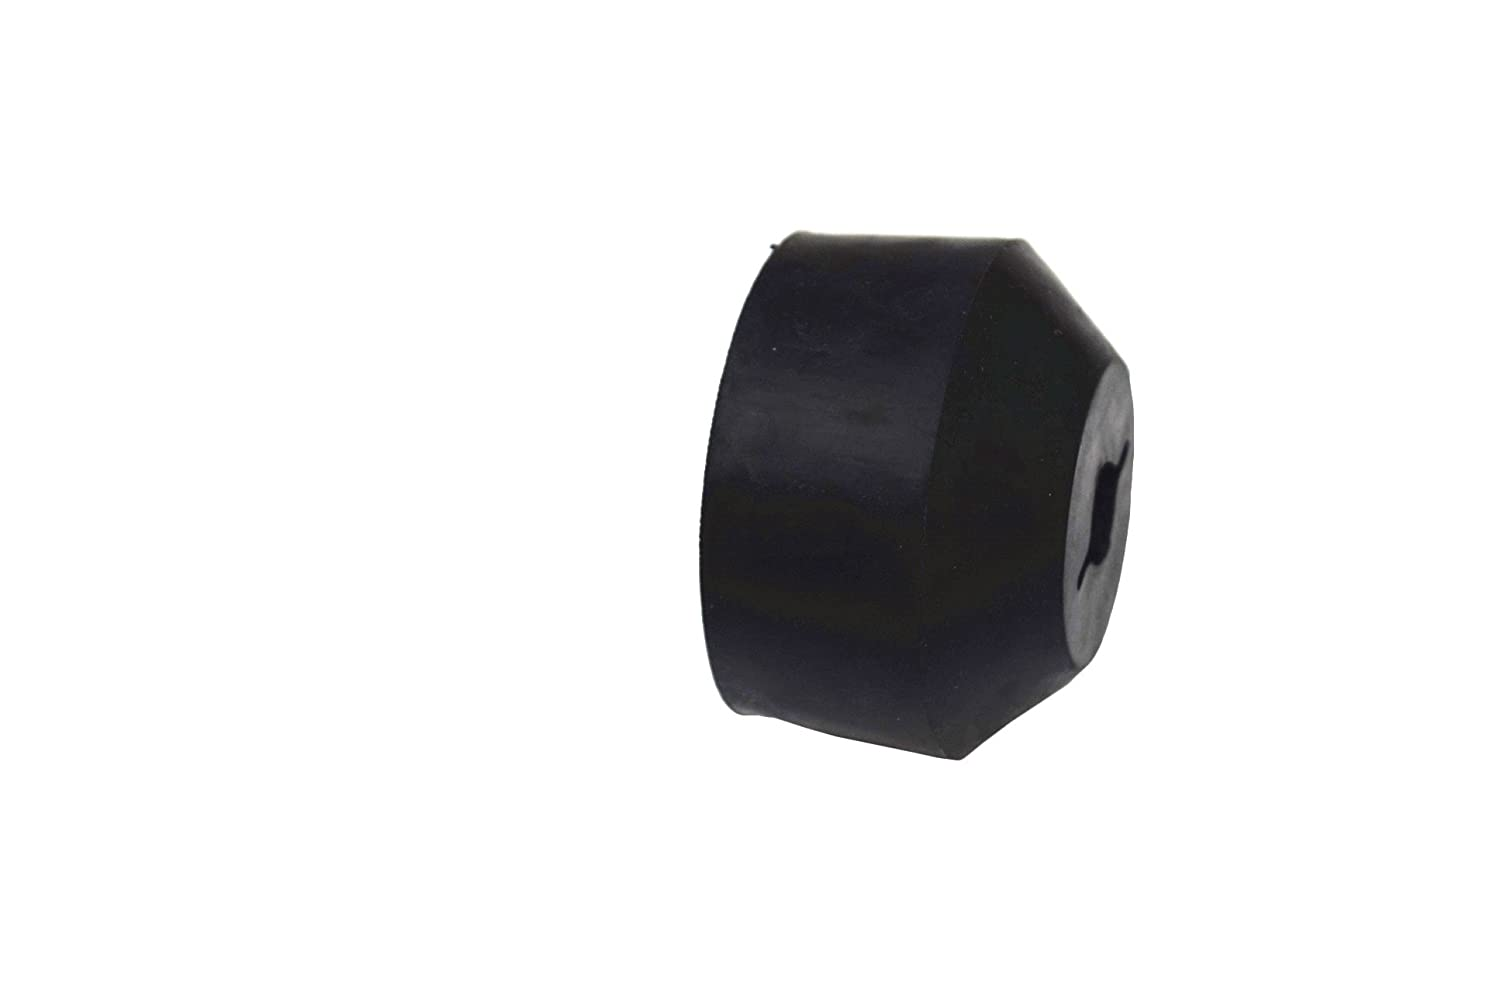 QIQU Winch Cable Stopper,Winch Stopper, Winch Hook Stopper for Synthetic Winch Cable (Black) X